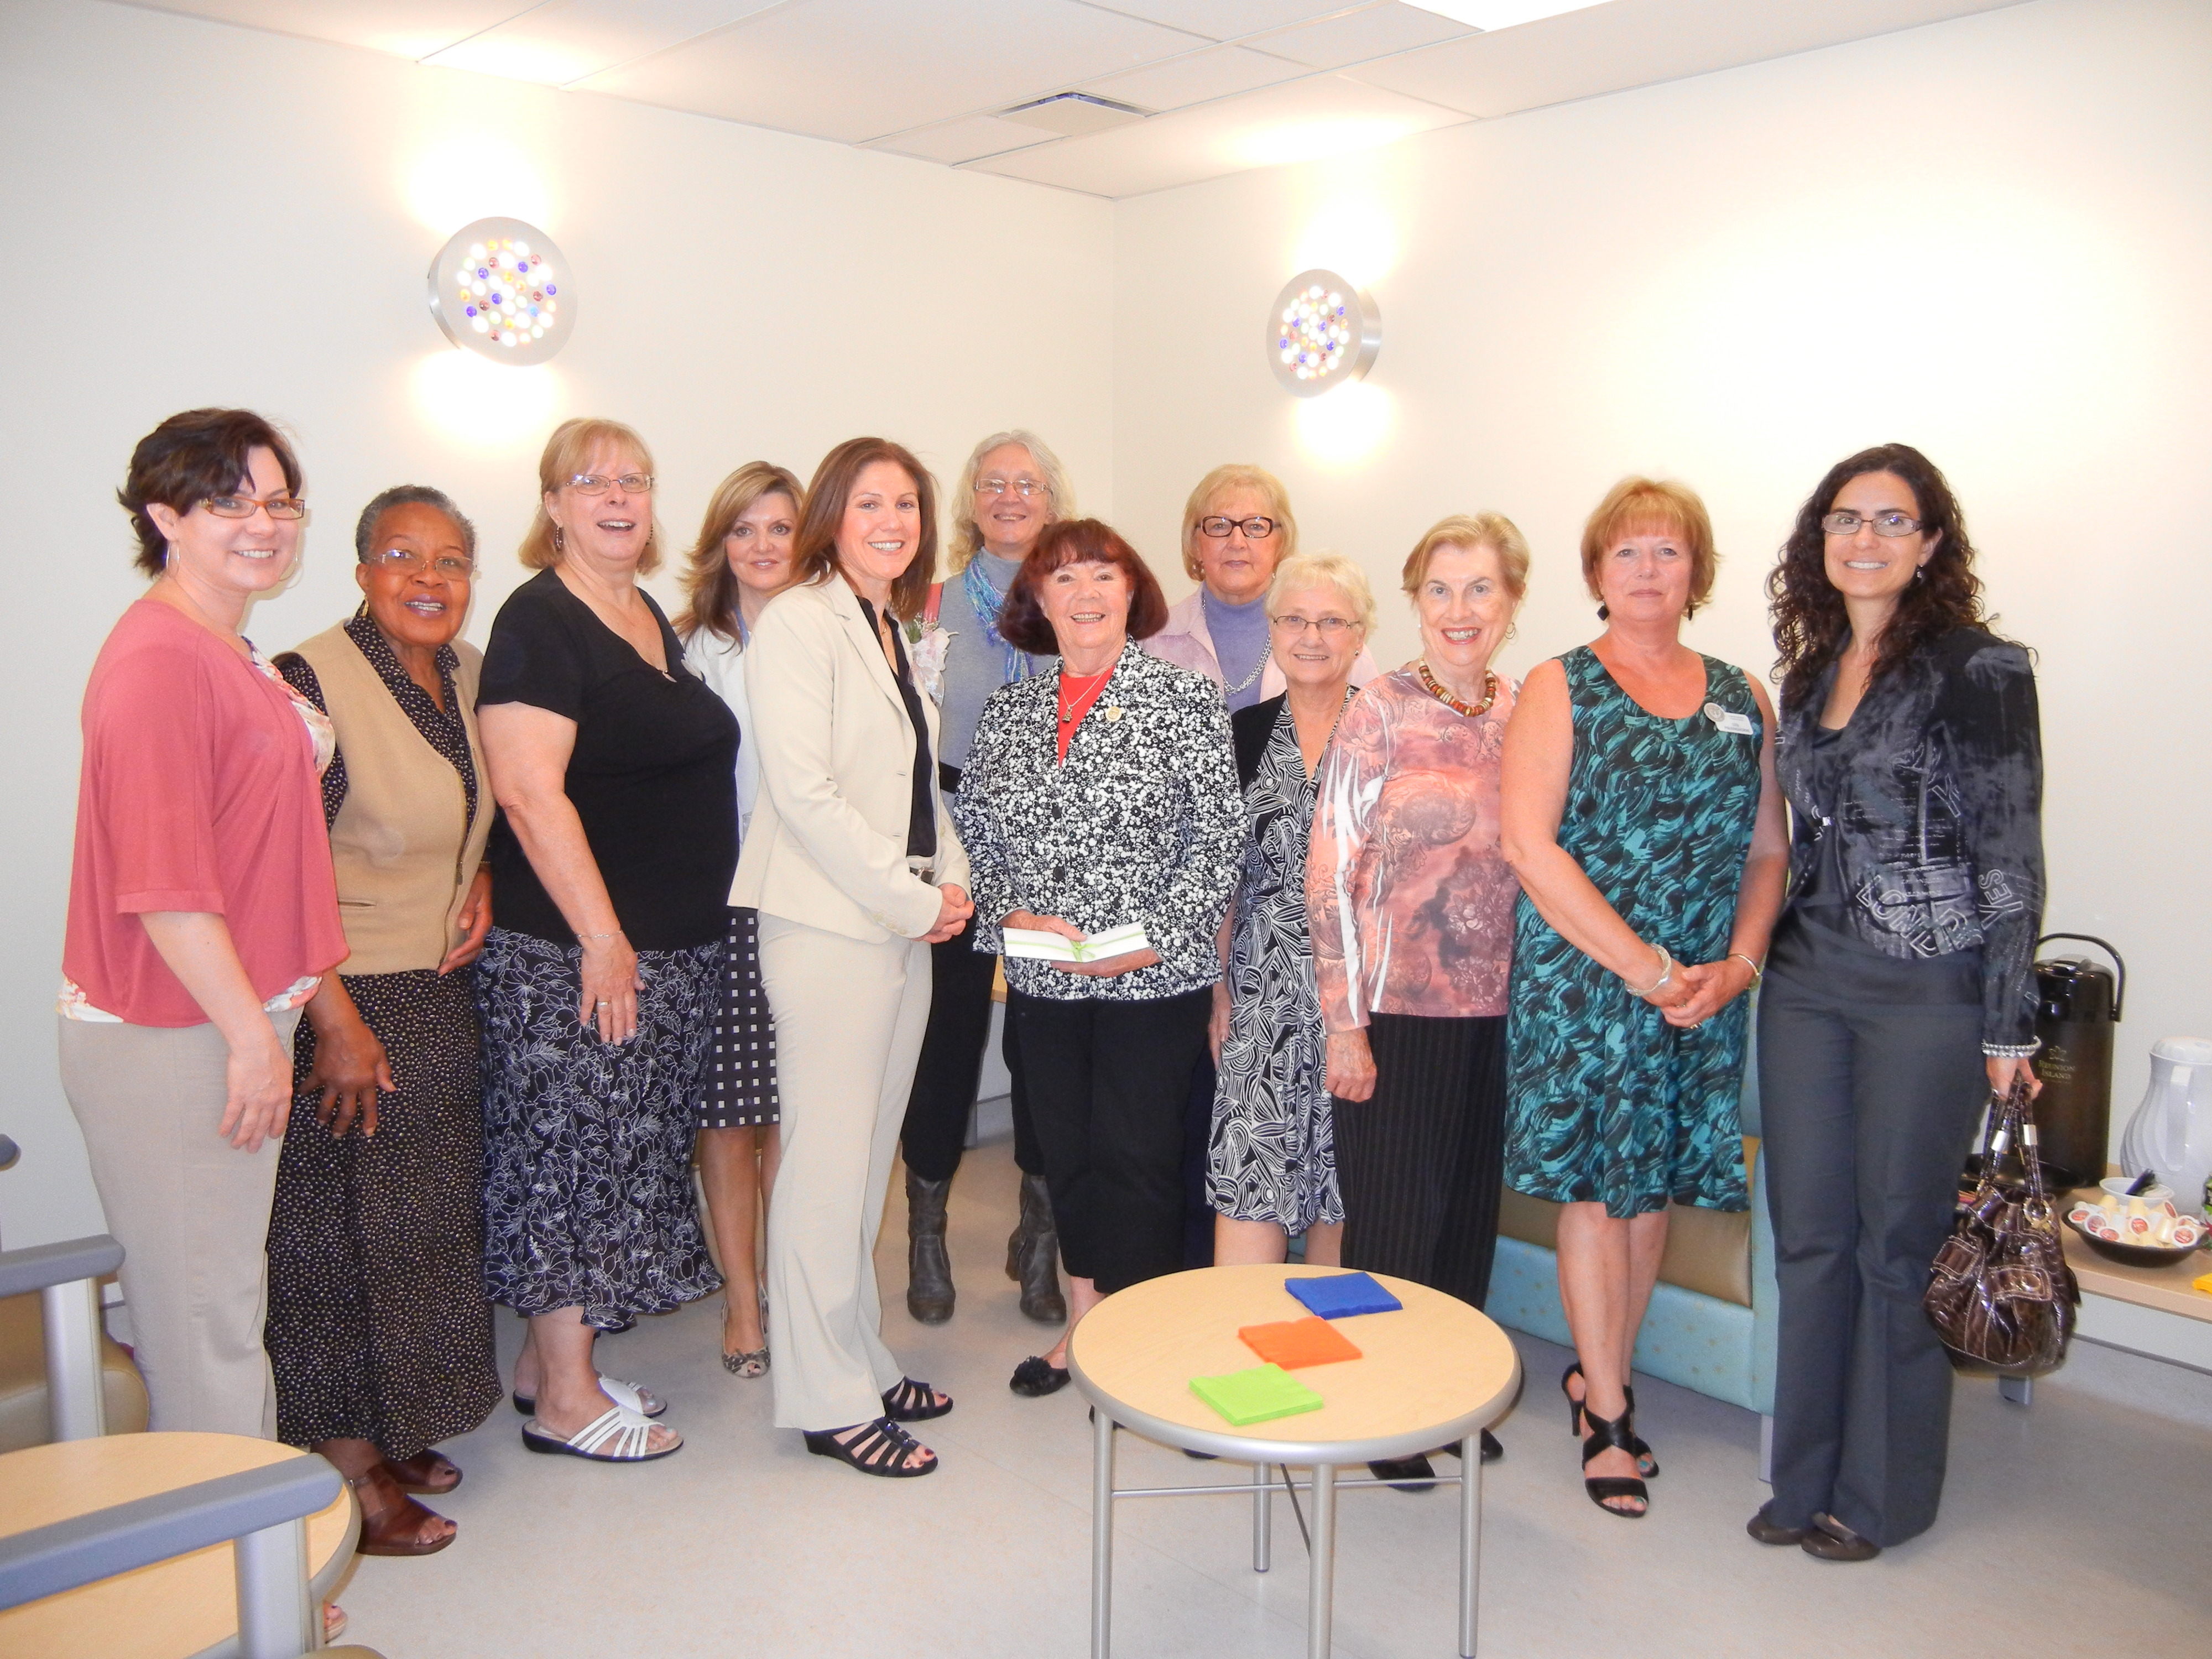 YWCA 2019 Women of Distinction nominees. Soroptimists are in the middle row, 3rd, 4th and 5th from the right: Helen Otrosina, Marion Cavasin and Pat McNeice.